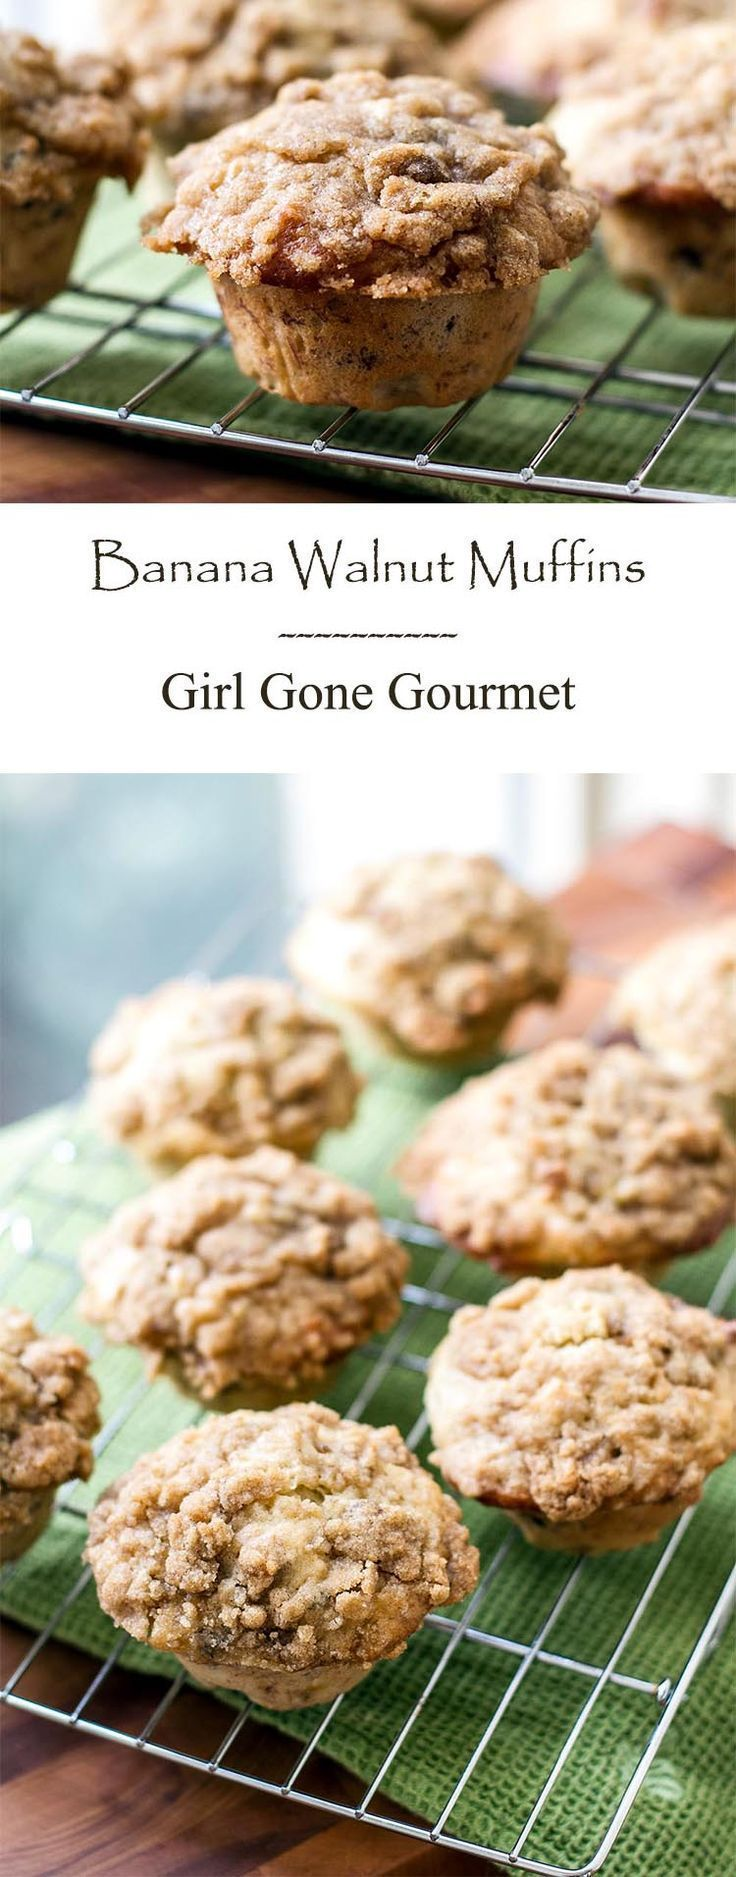 Simple banana walnut muffins with a streusel topping | girlgonegourmet.com